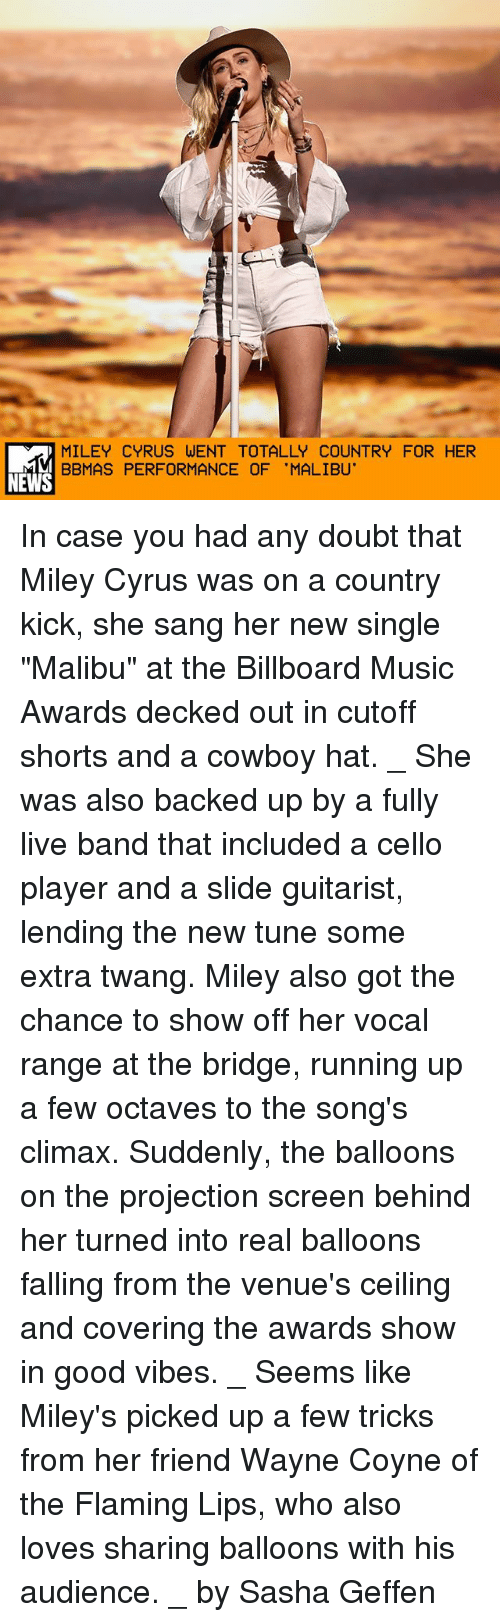 """Billboard, Memes, and Miley Cyrus: MILEY CYRUS WENT TOTALLY COUNTRY FOR HER  BBMAS PERFORMANCE OF 'MALIBU'  NEWS In case you had any doubt that Miley Cyrus was on a country kick, she sang her new single """"Malibu"""" at the Billboard Music Awards decked out in cutoff shorts and a cowboy hat. _ She was also backed up by a fully live band that included a cello player and a slide guitarist, lending the new tune some extra twang. Miley also got the chance to show off her vocal range at the bridge, running up a few octaves to the song's climax. Suddenly, the balloons on the projection screen behind her turned into real balloons falling from the venue's ceiling and covering the awards show in good vibes. _ Seems like Miley's picked up a few tricks from her friend Wayne Coyne of the Flaming Lips, who also loves sharing balloons with his audience. _ by Sasha Geffen"""